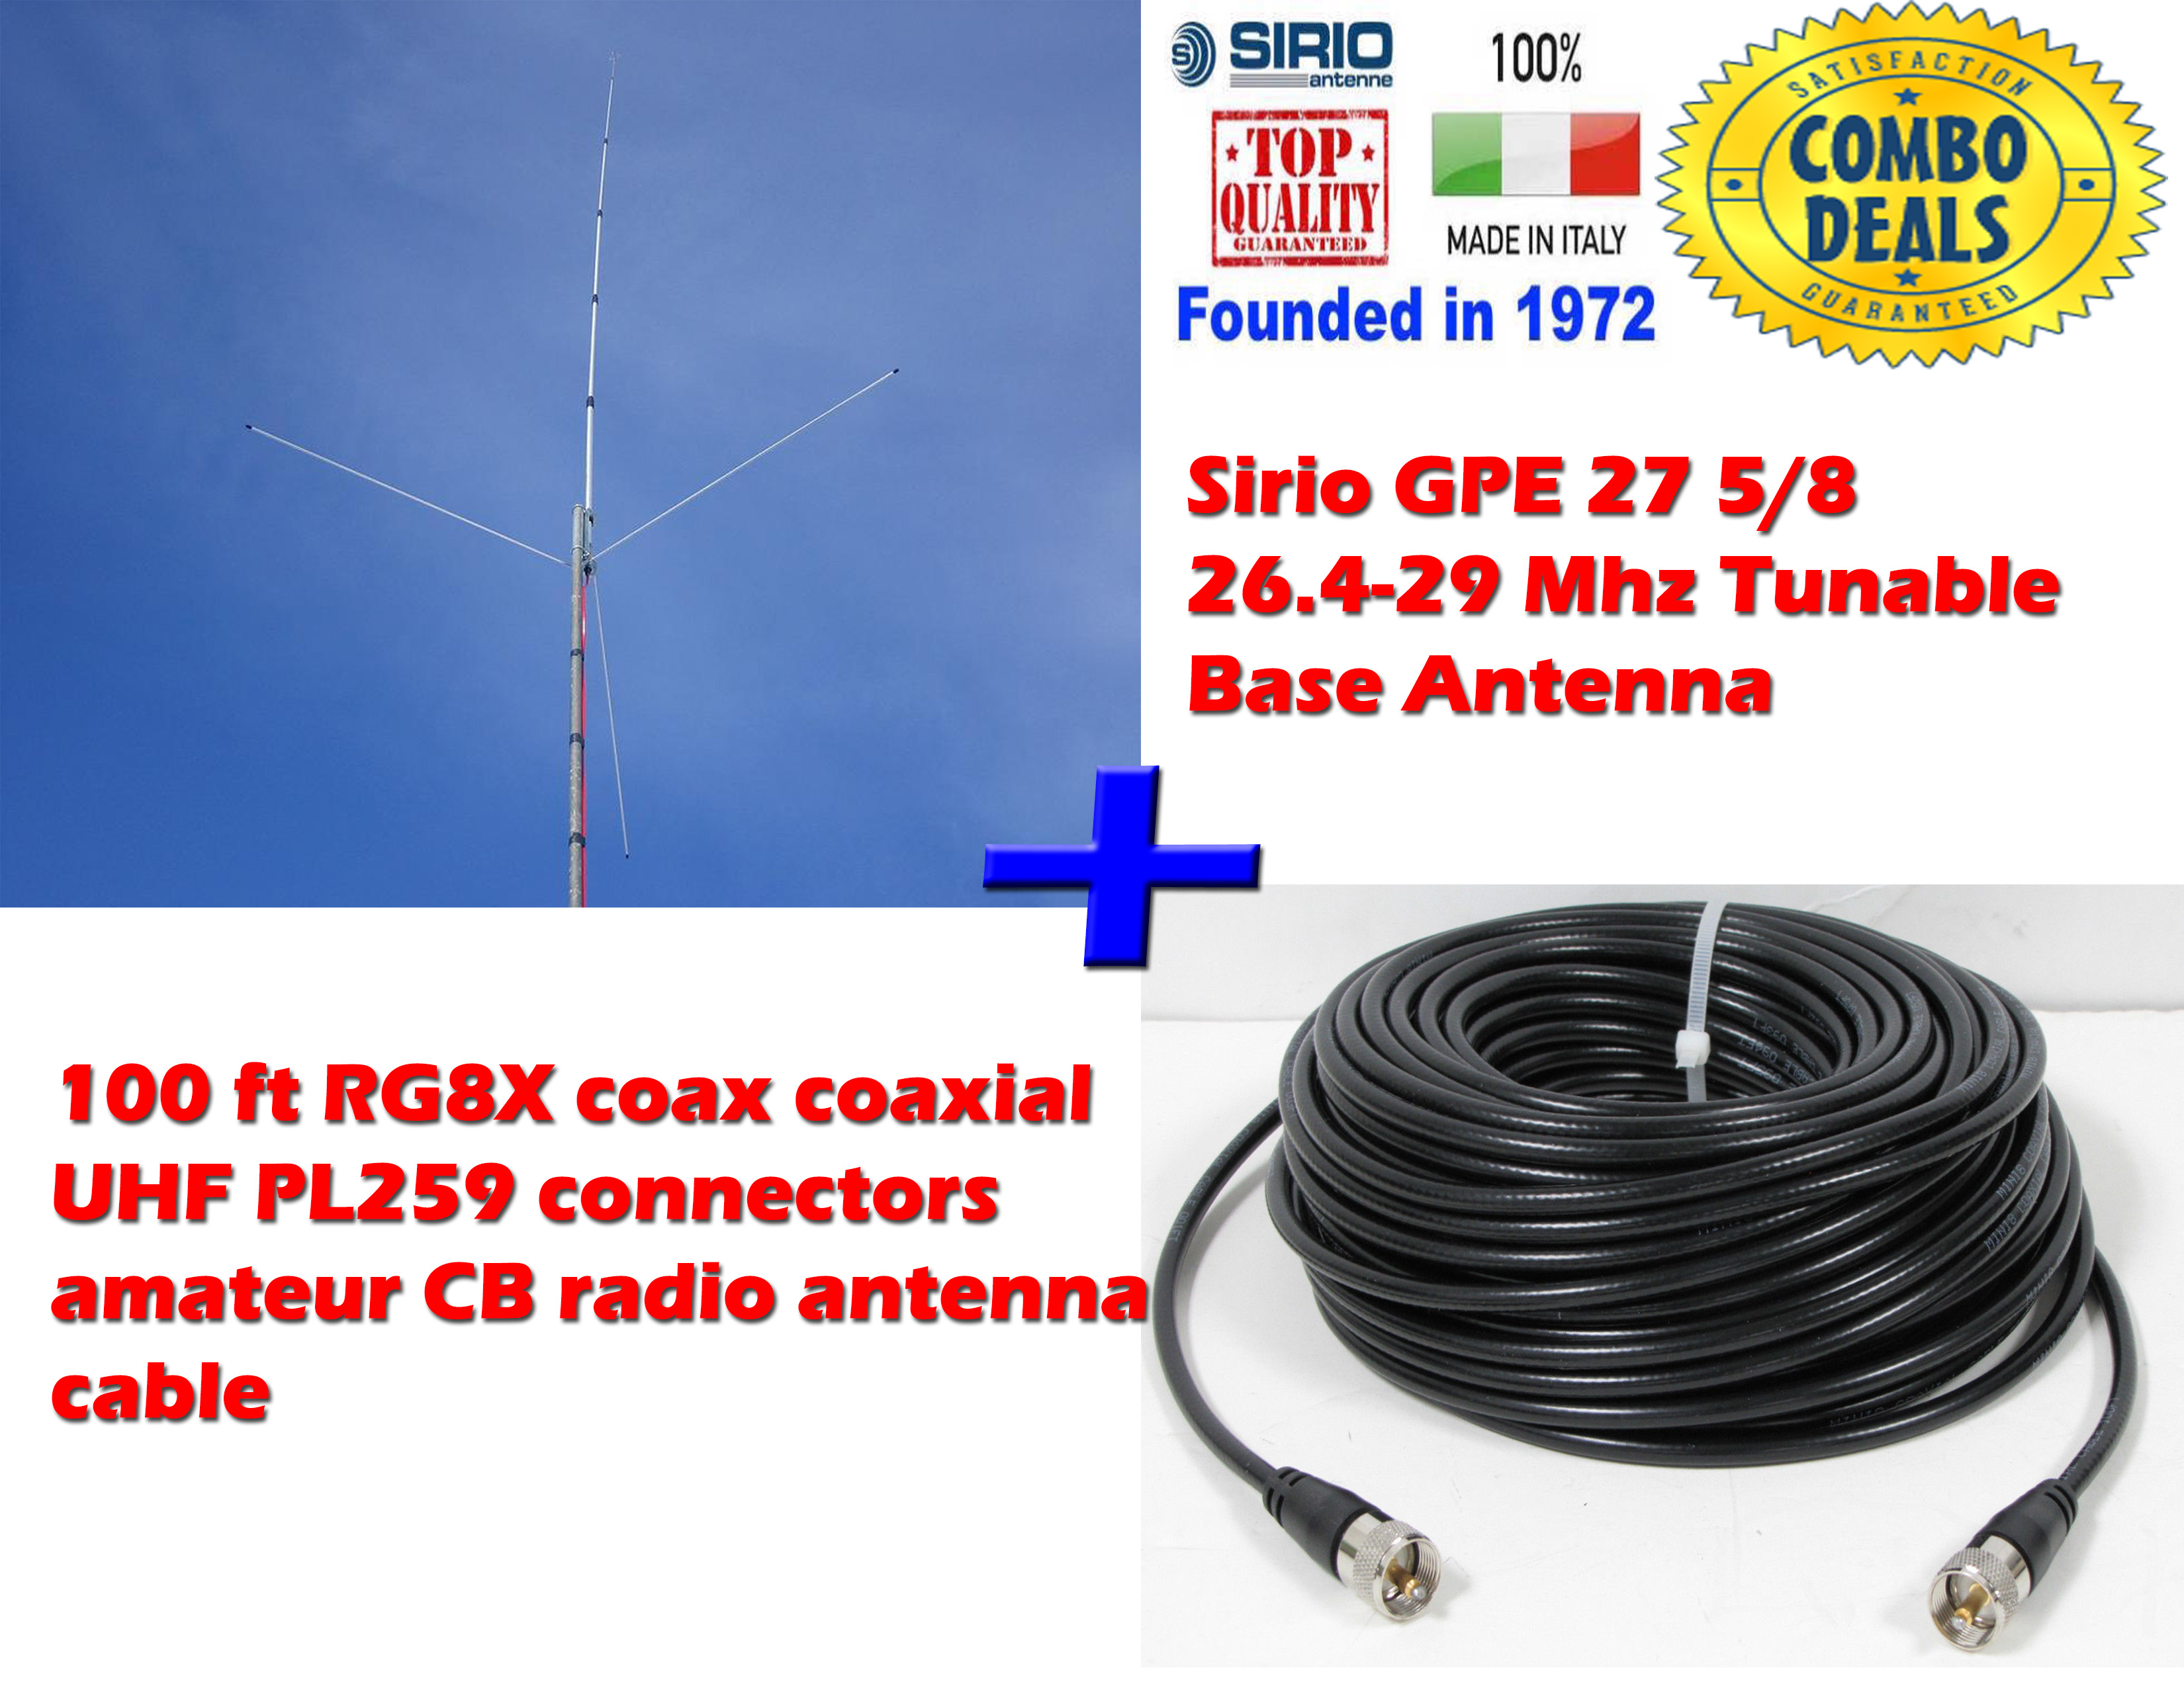 CB & 10M : Sirio Antenna, High Performance Antenna Made in Italy